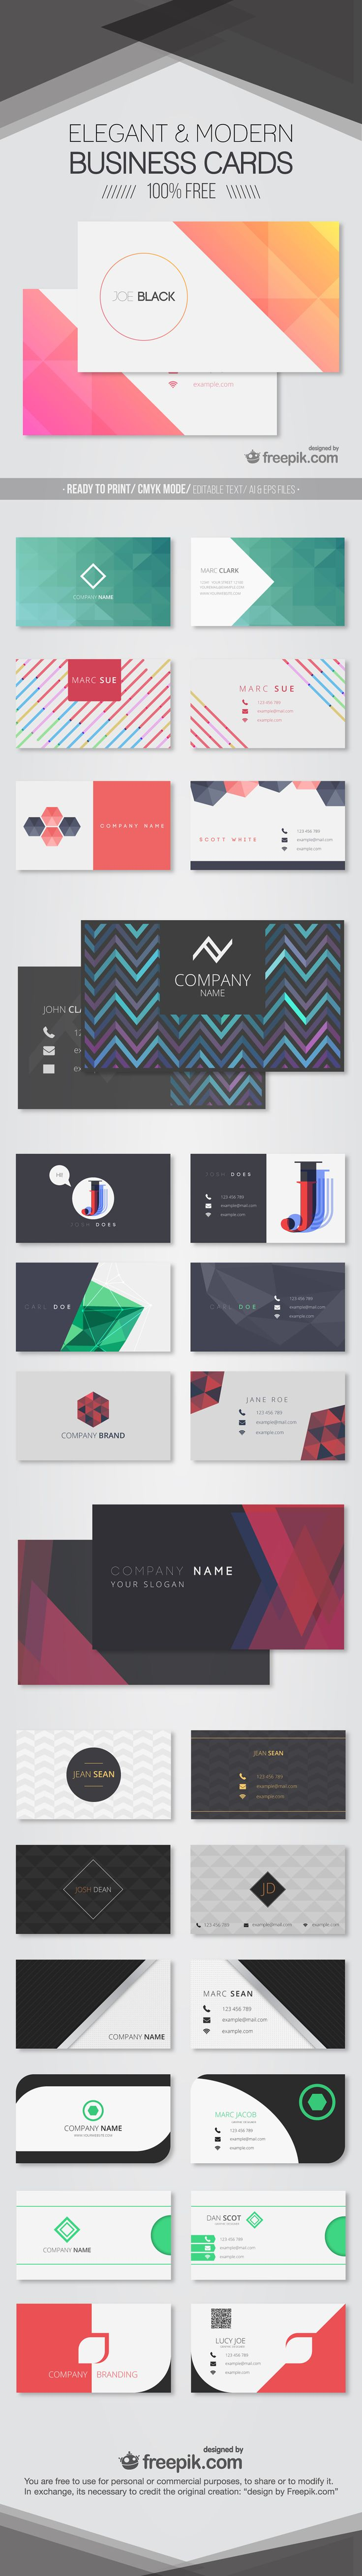 best 25 elegant business cards ideas on pinterest